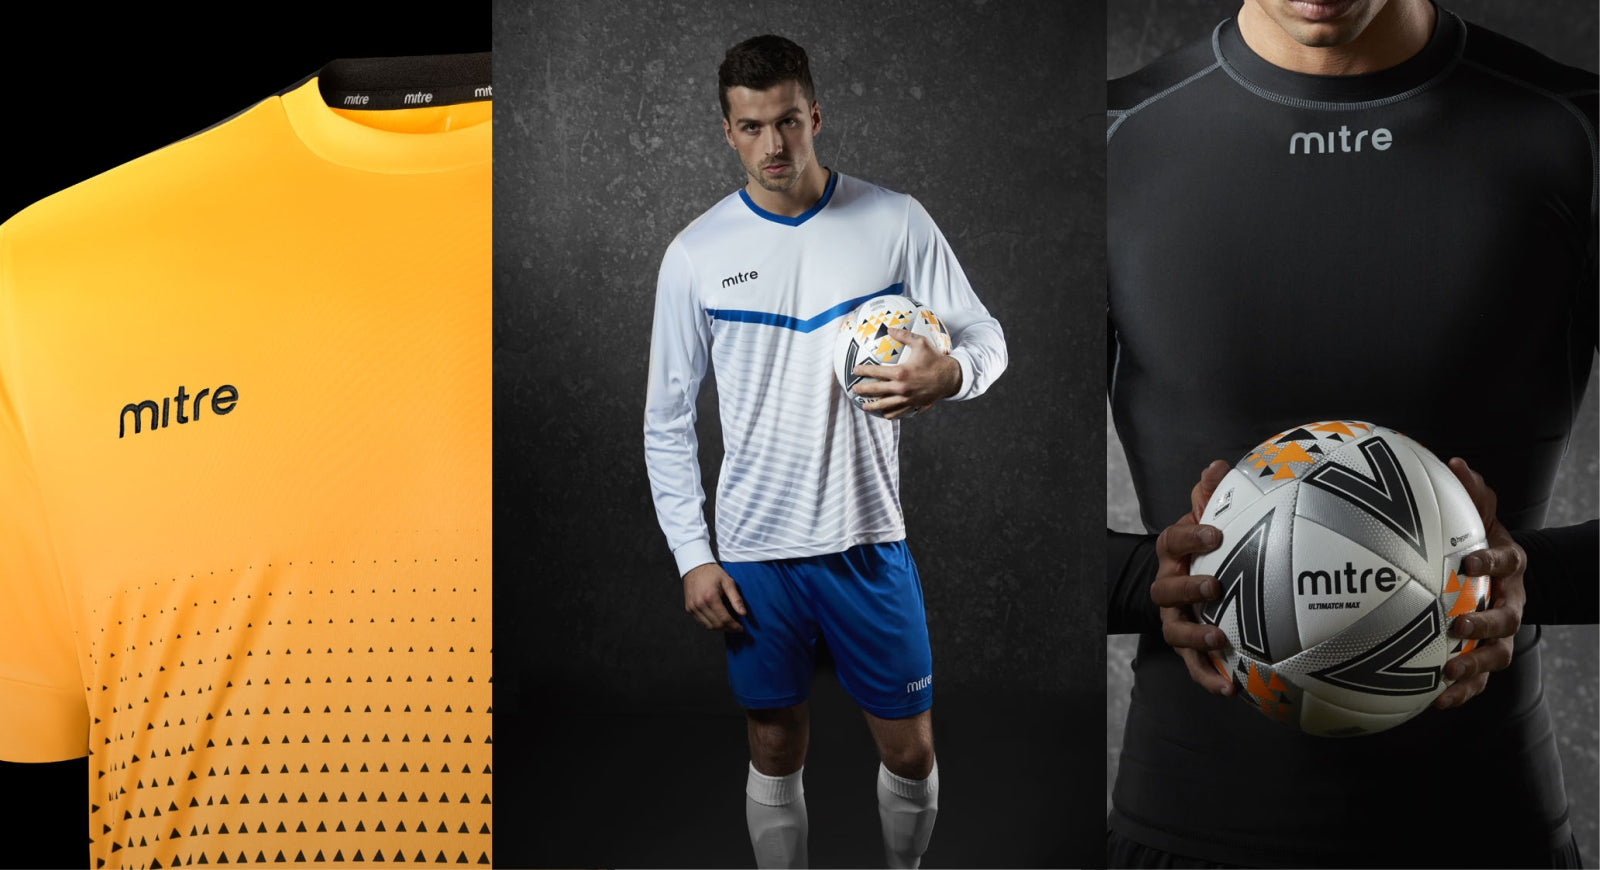 3 Mitre product images including footballs and teamwear. Page link to 2019/20 Mitre Teamwear.